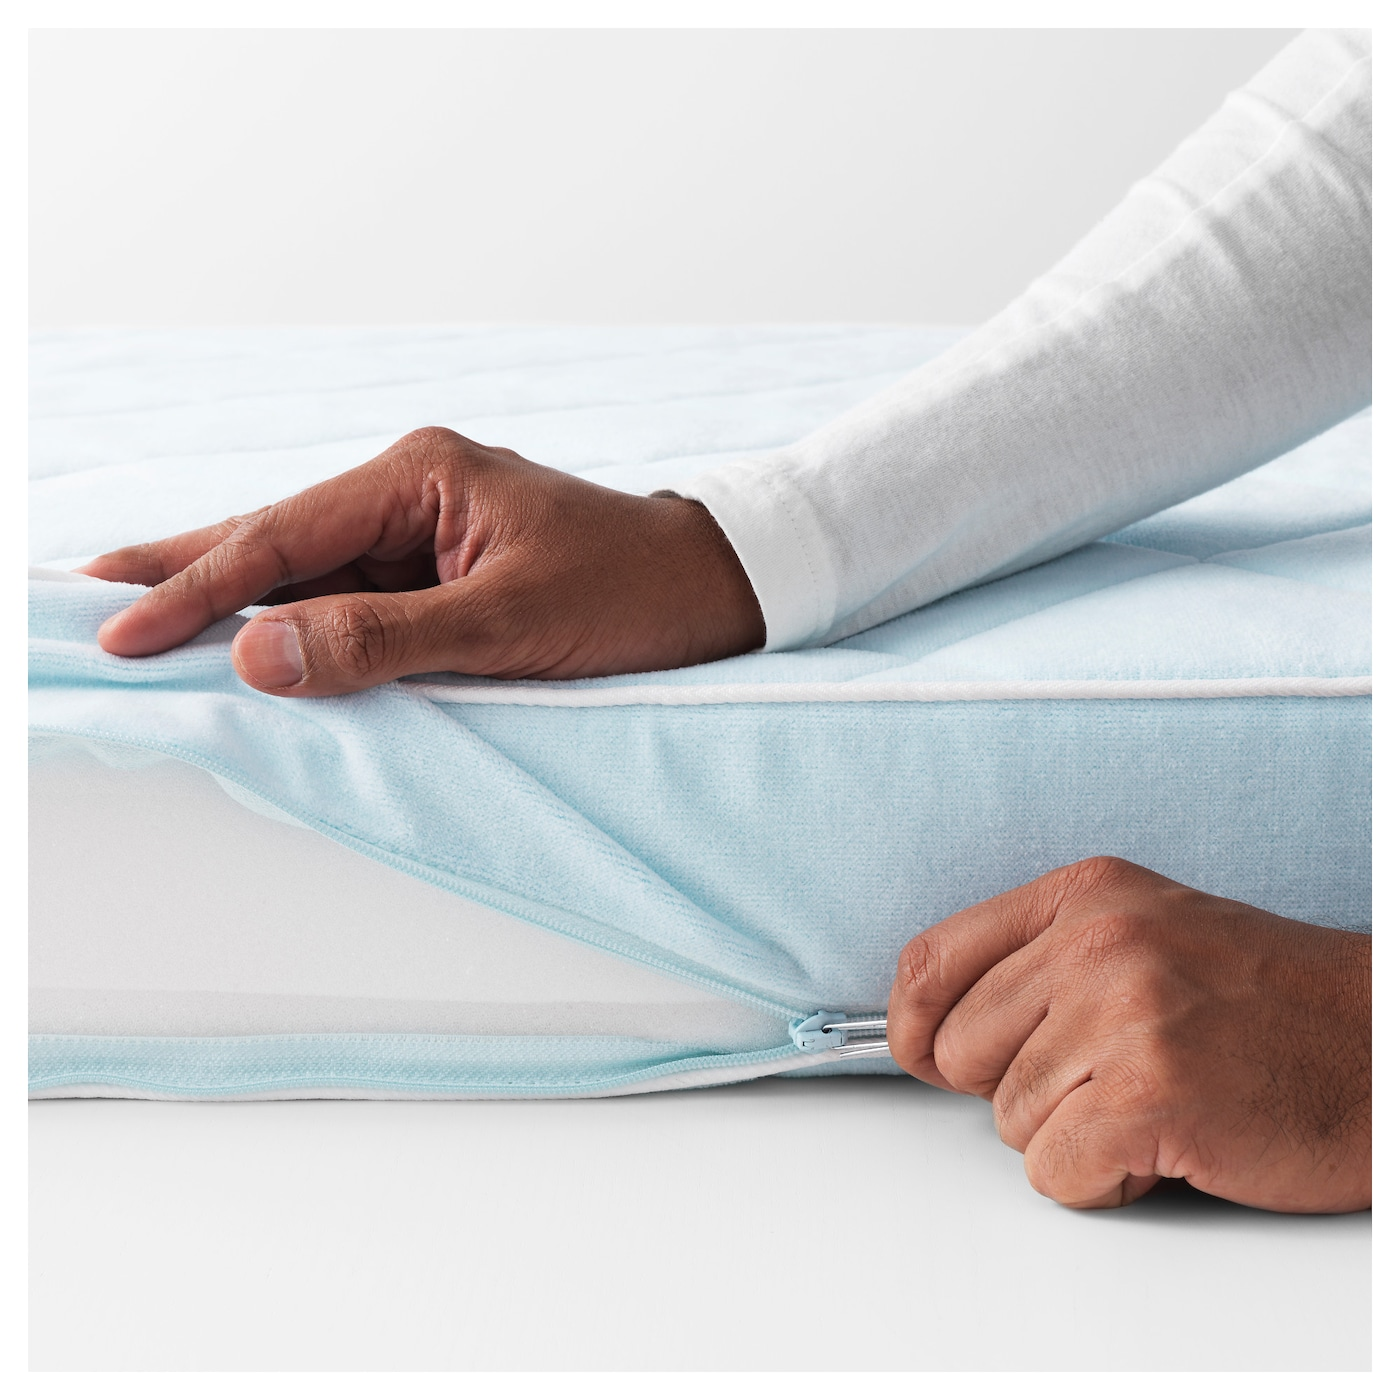 IKEA VYSSA VACKERT mattress for cot Both sides can be slept on, so it lasts longer.